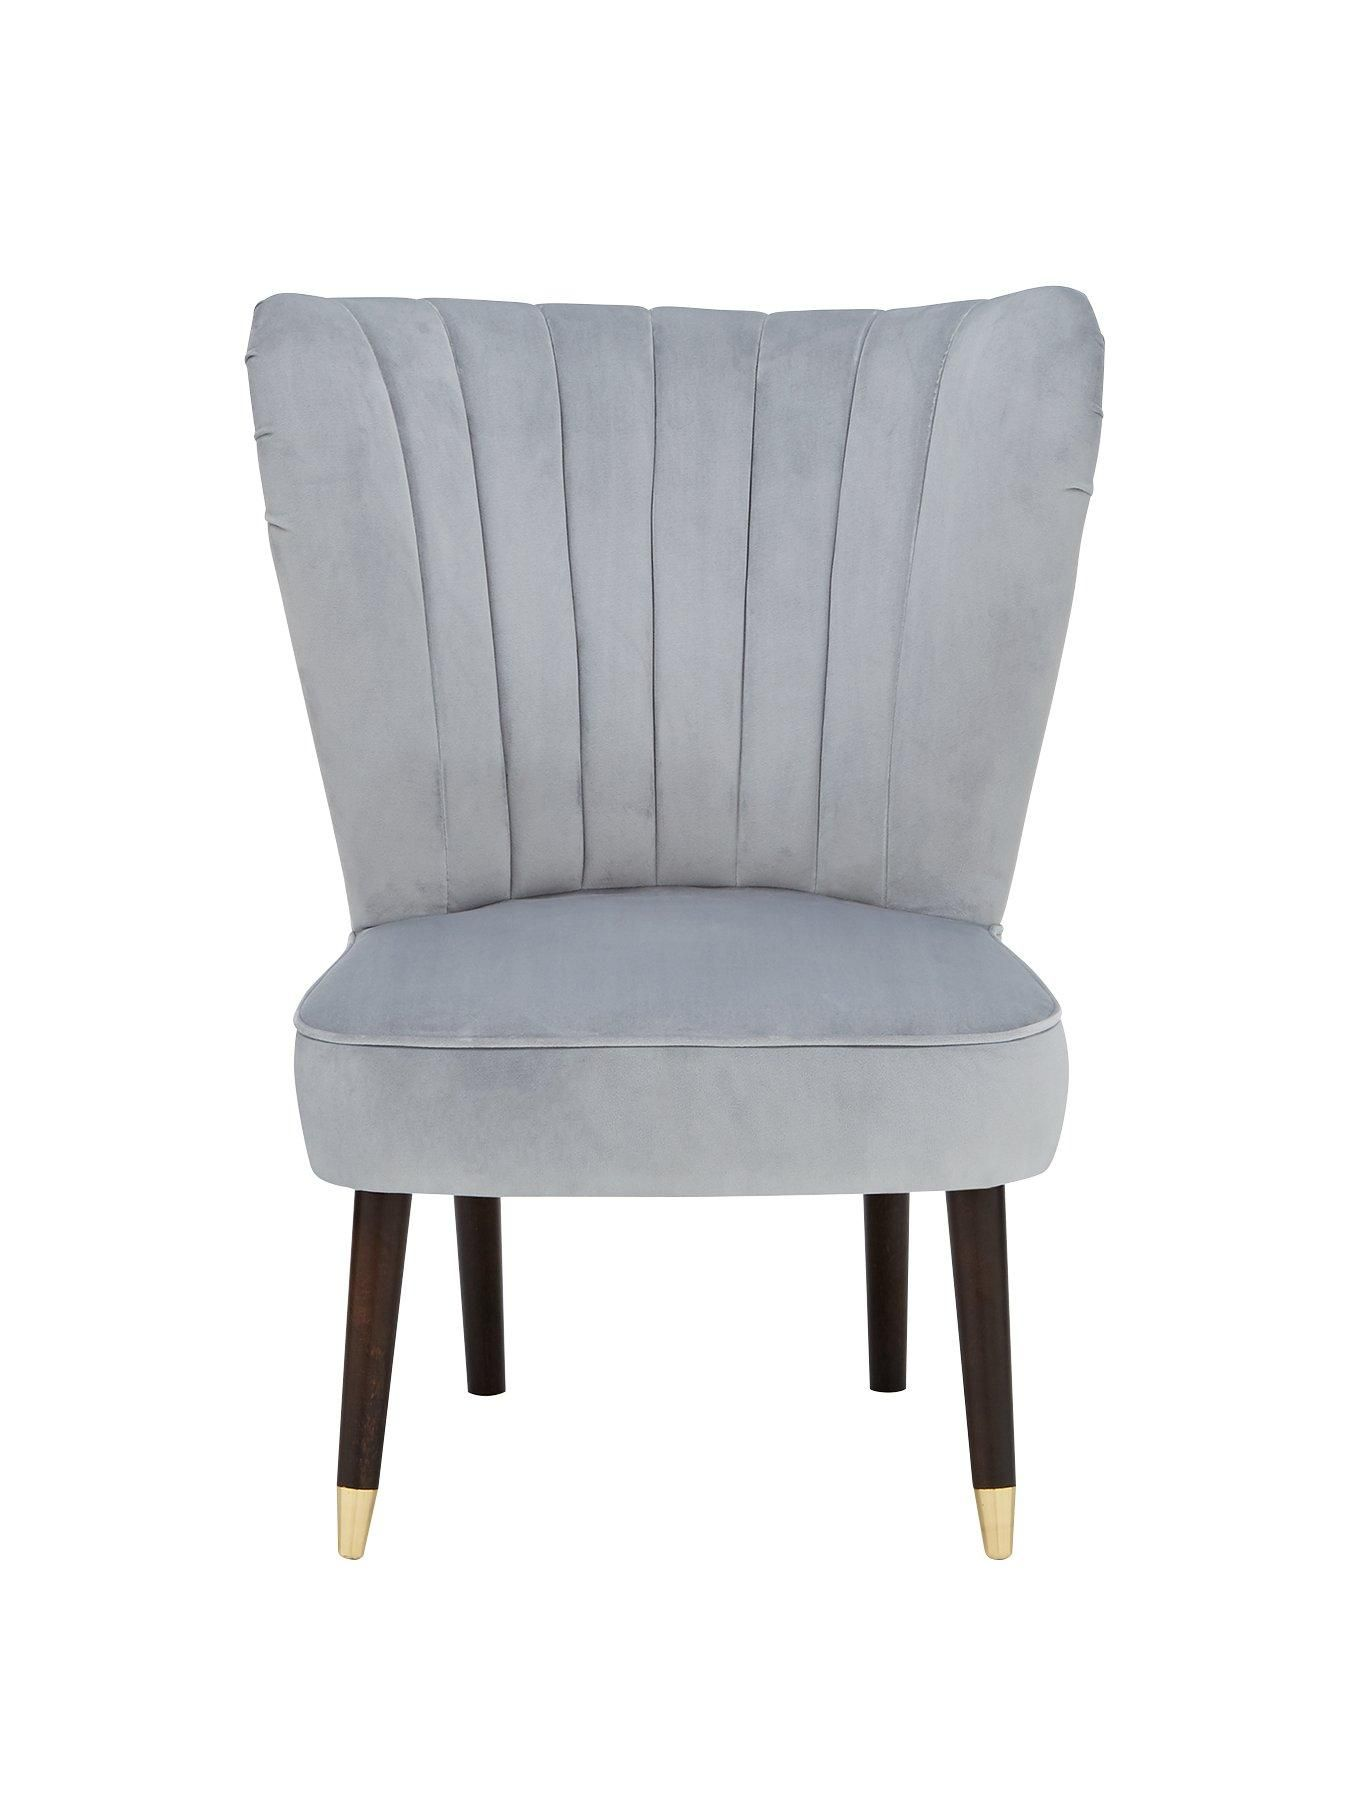 Michelle Keegan Home Sabina Fabric Accent Chair In Grey Accent